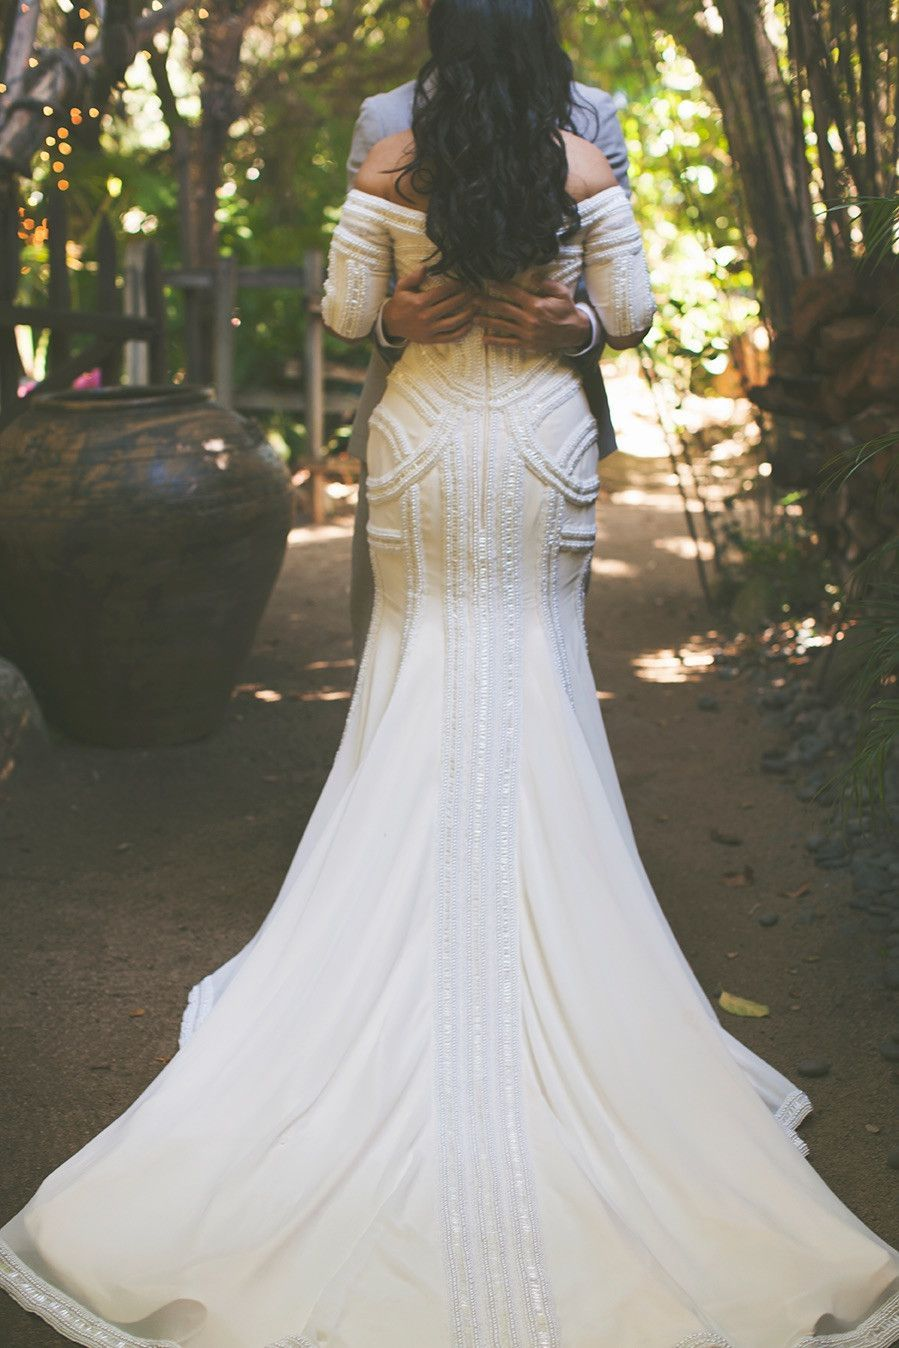 J Aton Couture Inspired Beaded Wedding Dresses From China Curvy Wedding Dress Wedding Dresses Nz